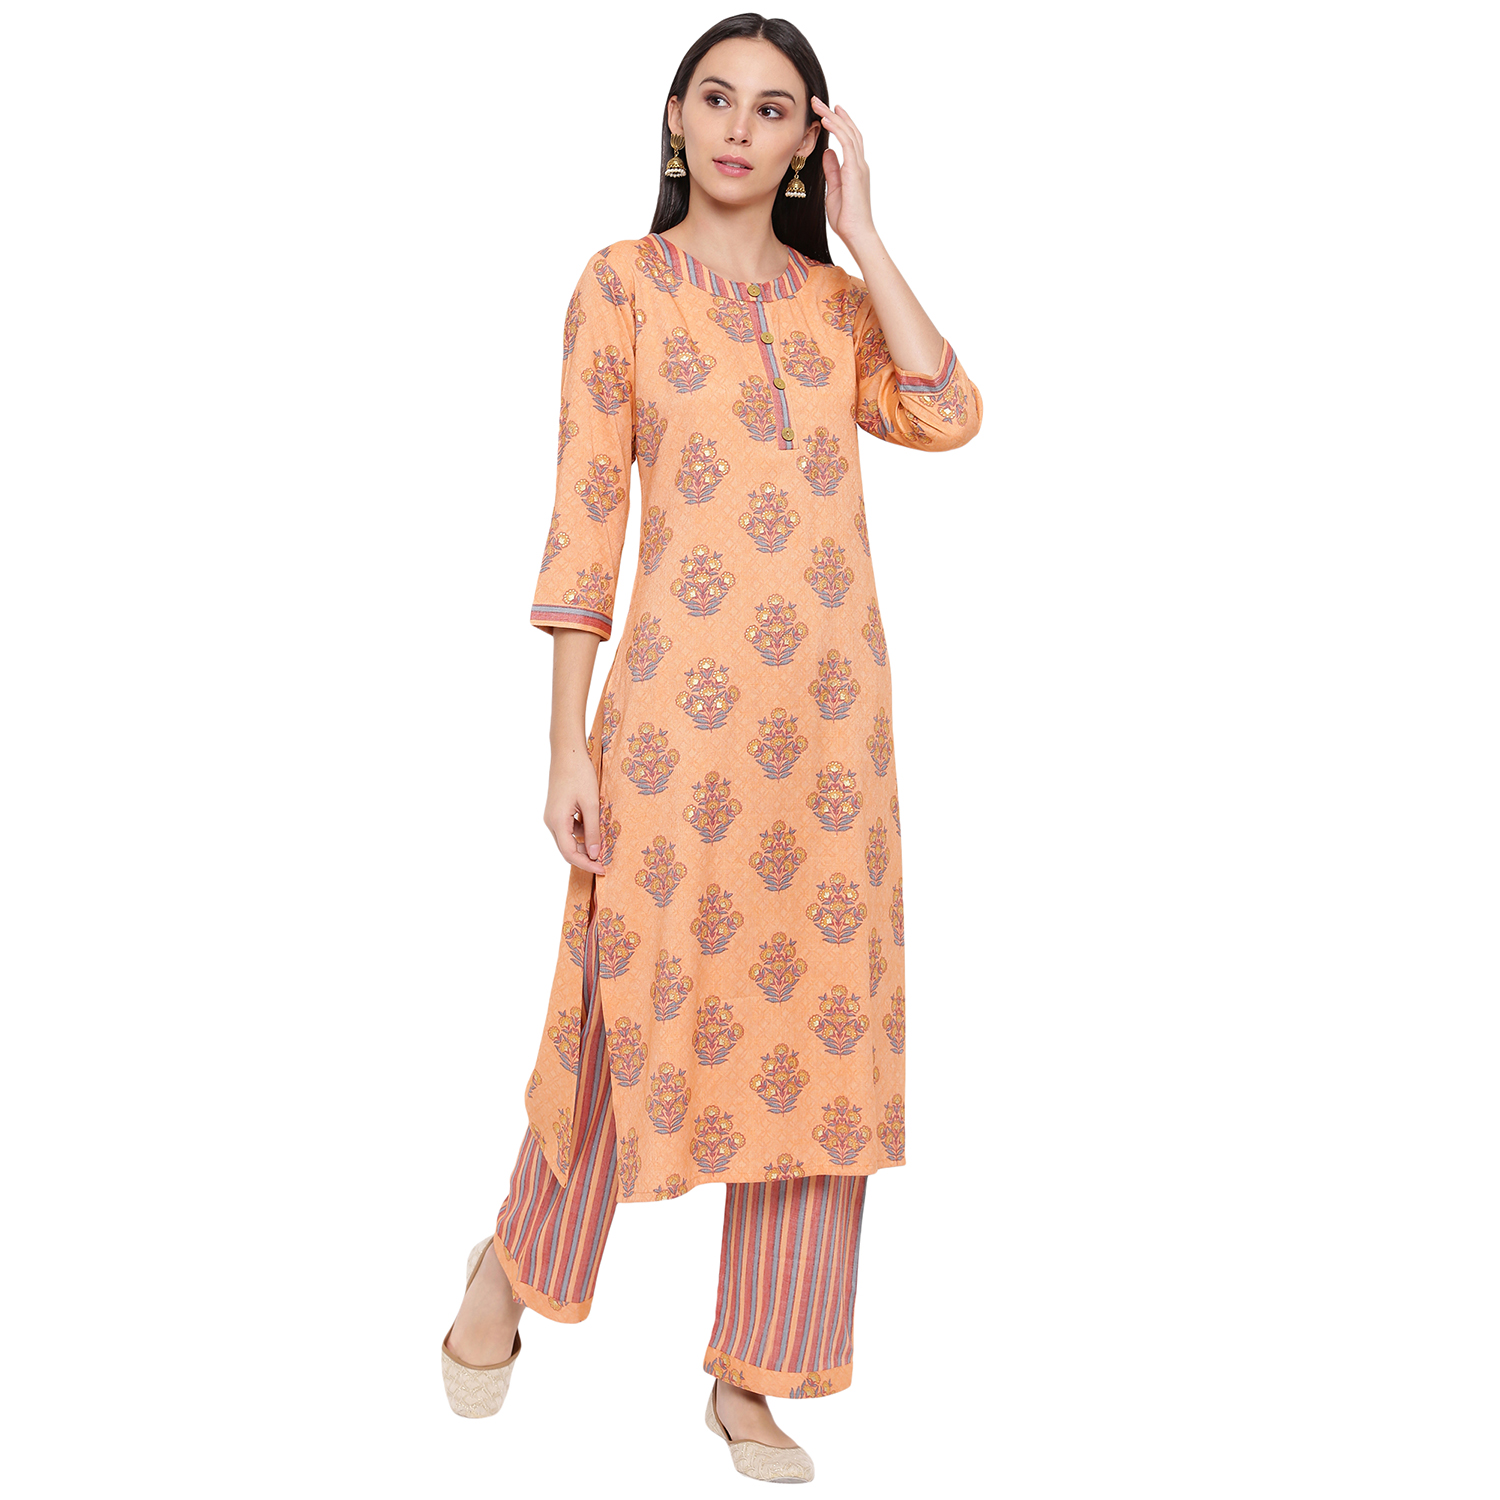 Fabnest | Fabnest womens rayon light orange printed pant and kurta set with round neck and wooden buttons with stripe pants.